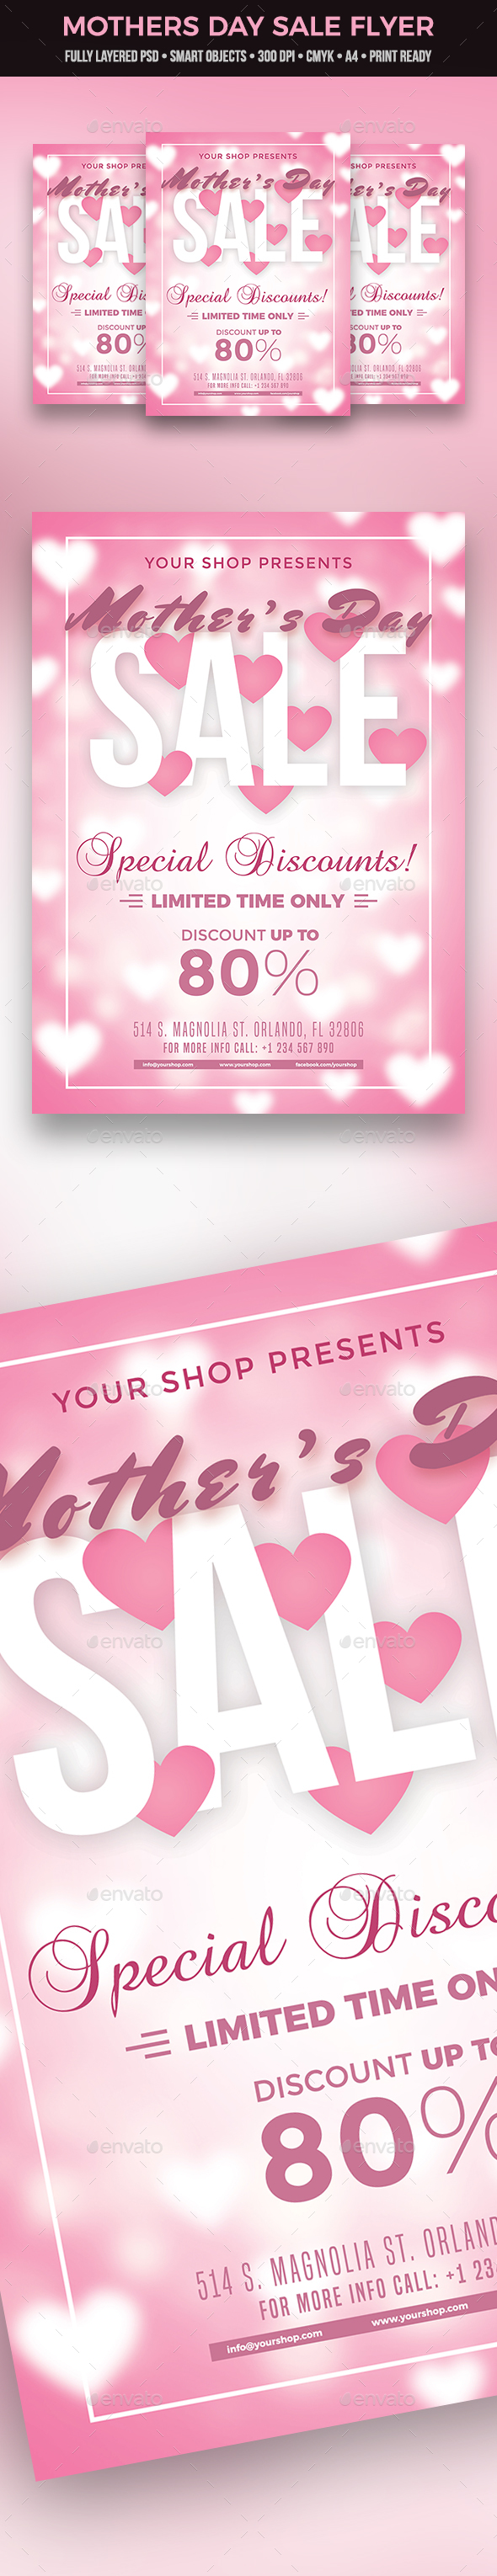 Mother's Day Sale Flyer - Commerce Flyers